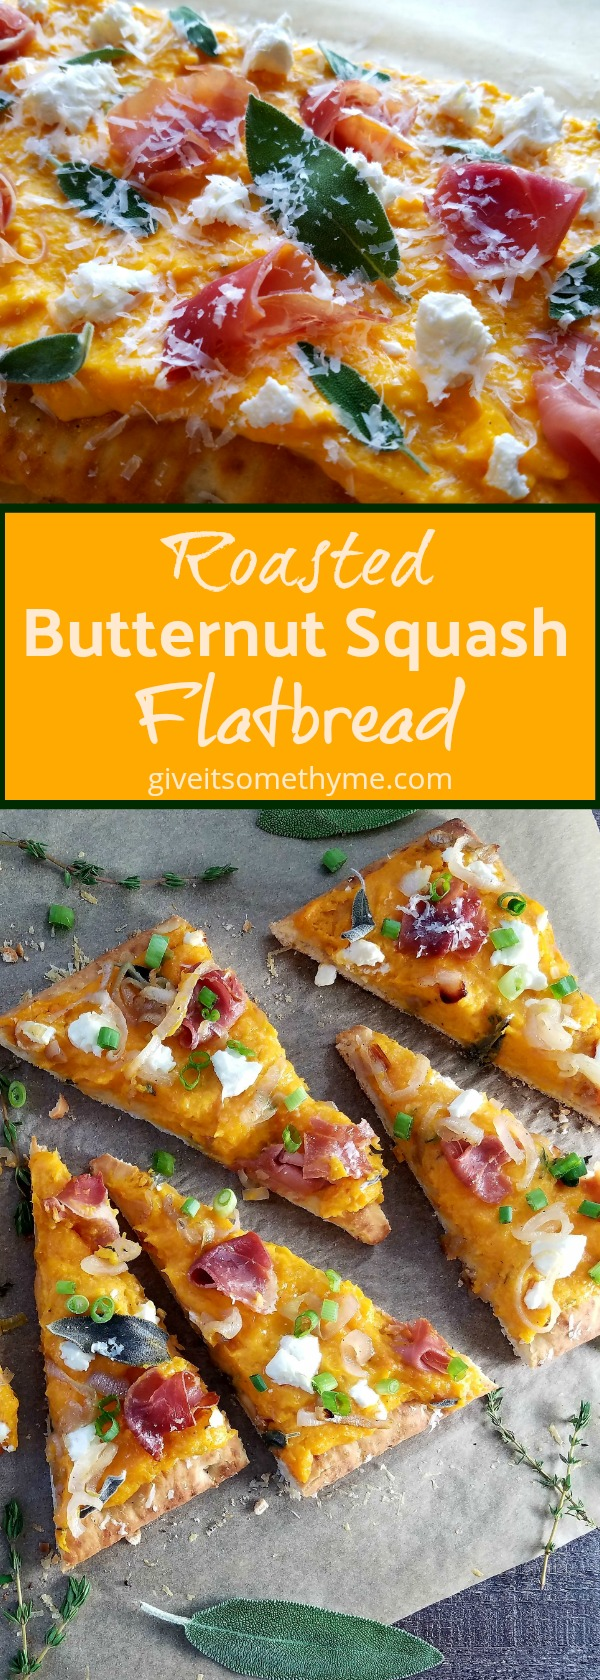 Roasted Butternut Squash Flatbread - Give it Some Thyme